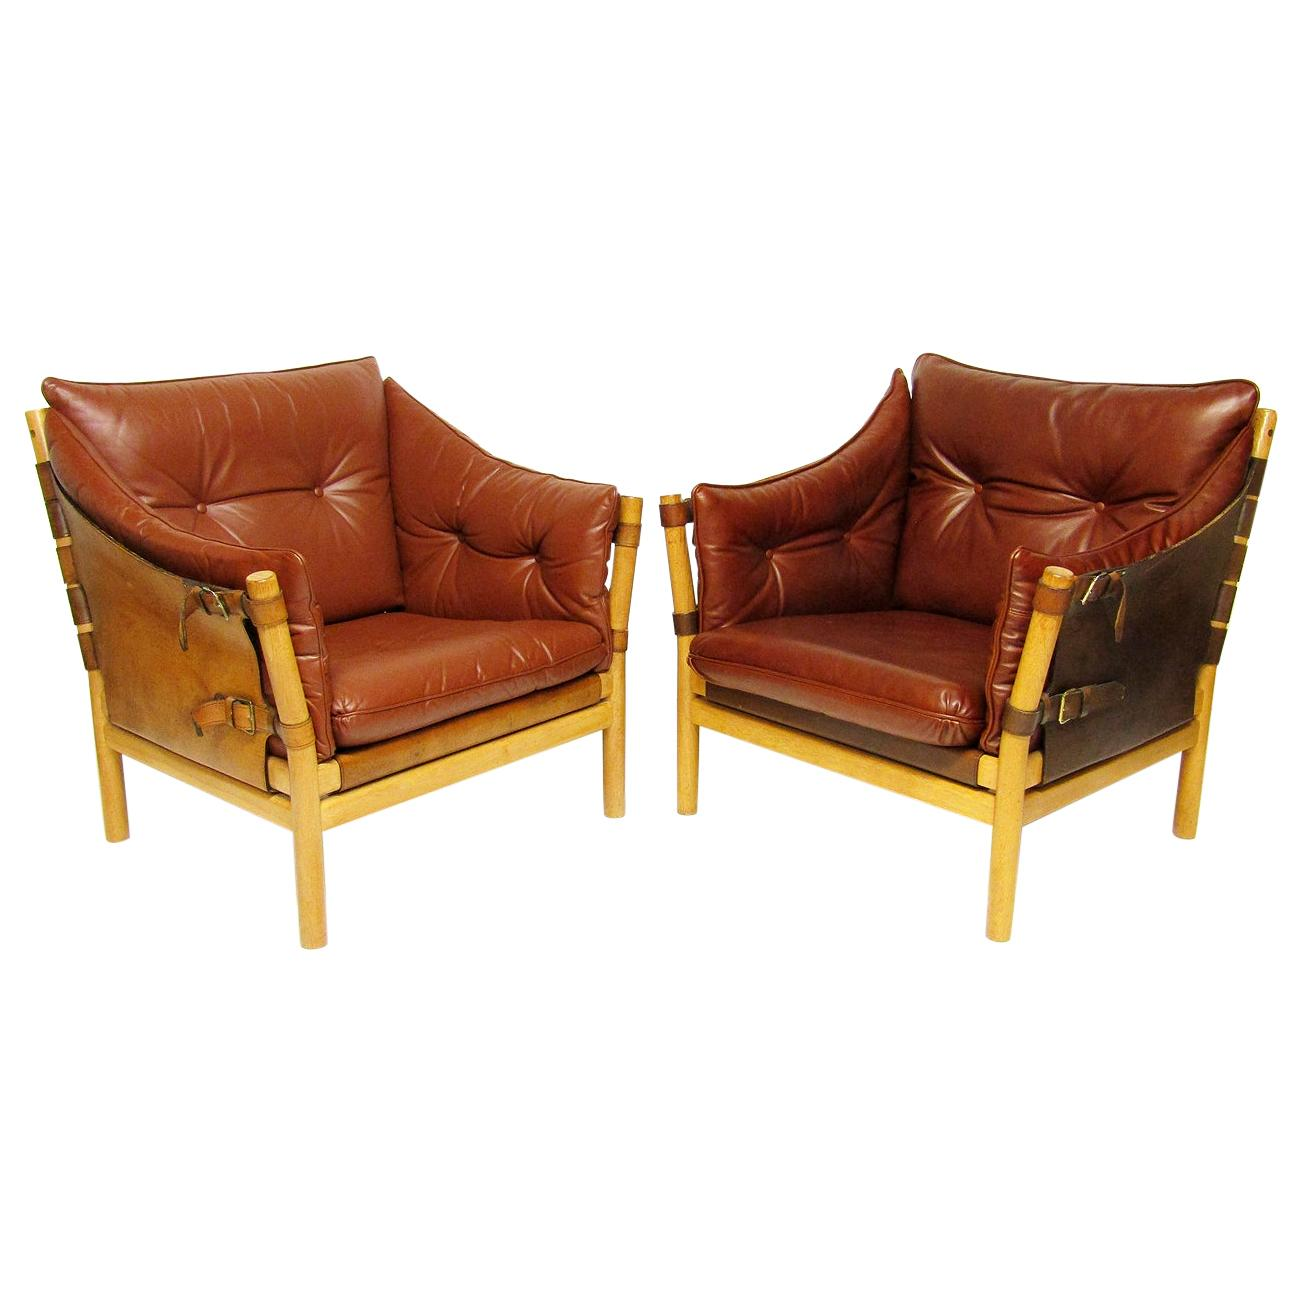 """Pair of 1960s Leather """"Ilona"""" Safari Lounge Chairs by Arne Norell for Aneby"""